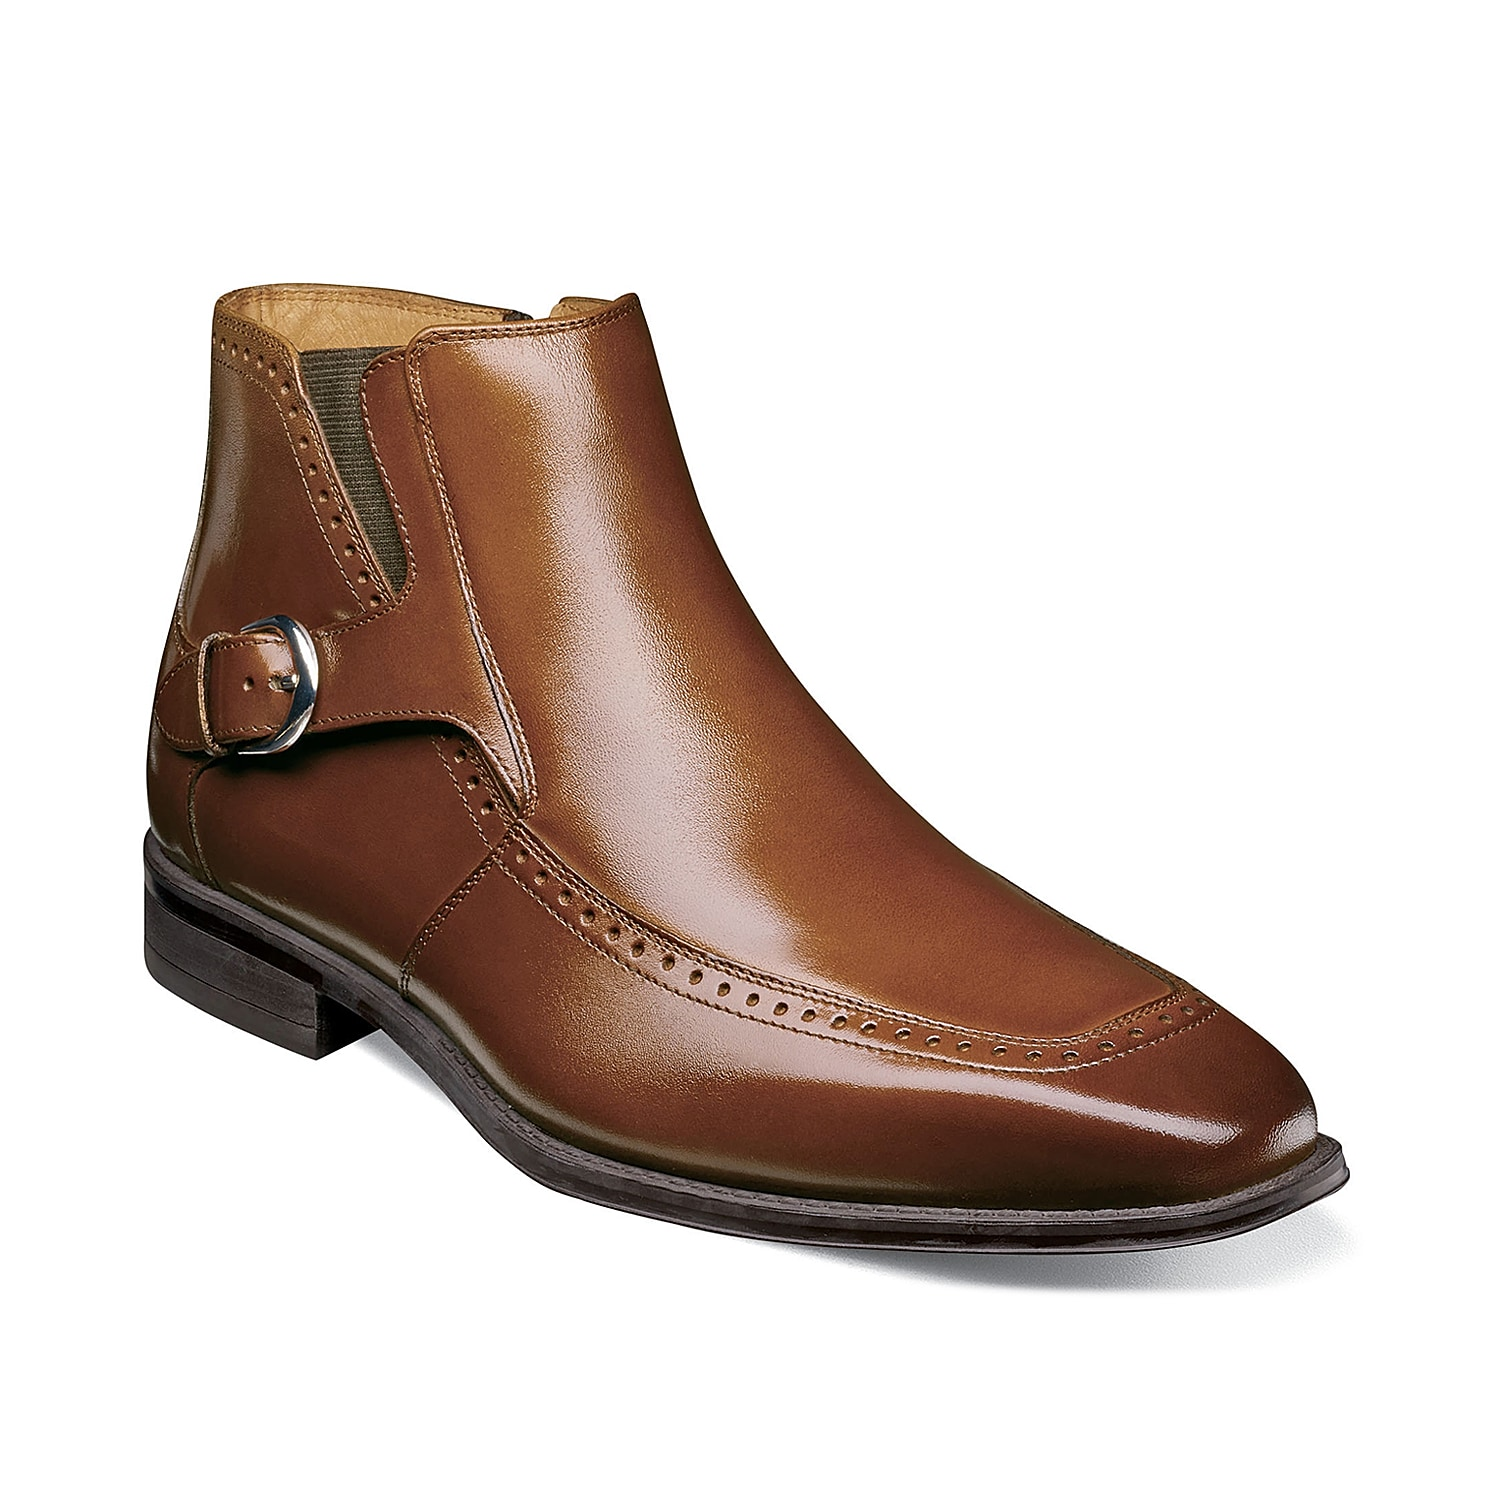 Spruce up your special occasion attire with the Patton from Stacy Adams. These sleek leather boots feature a modern square toe and decorative buckle that will catch the attention of those you pass by.